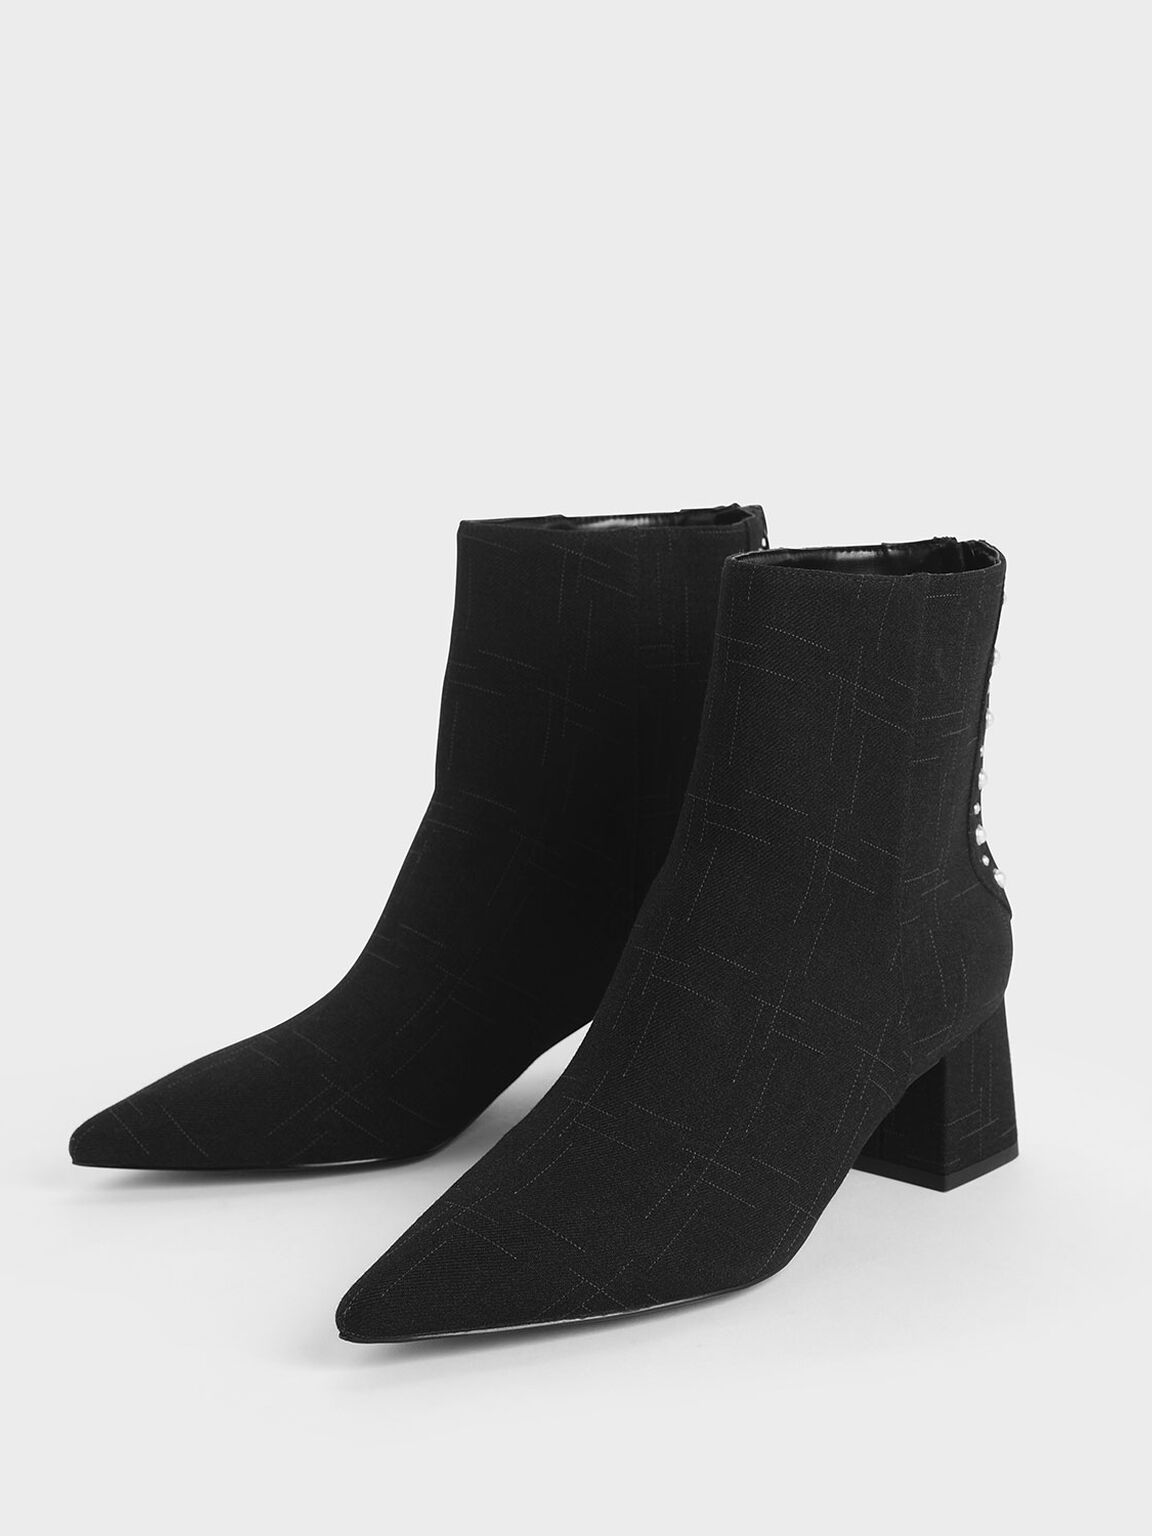 Embellished Trim Block Heel Ankle Boots, Black Textured, hi-res